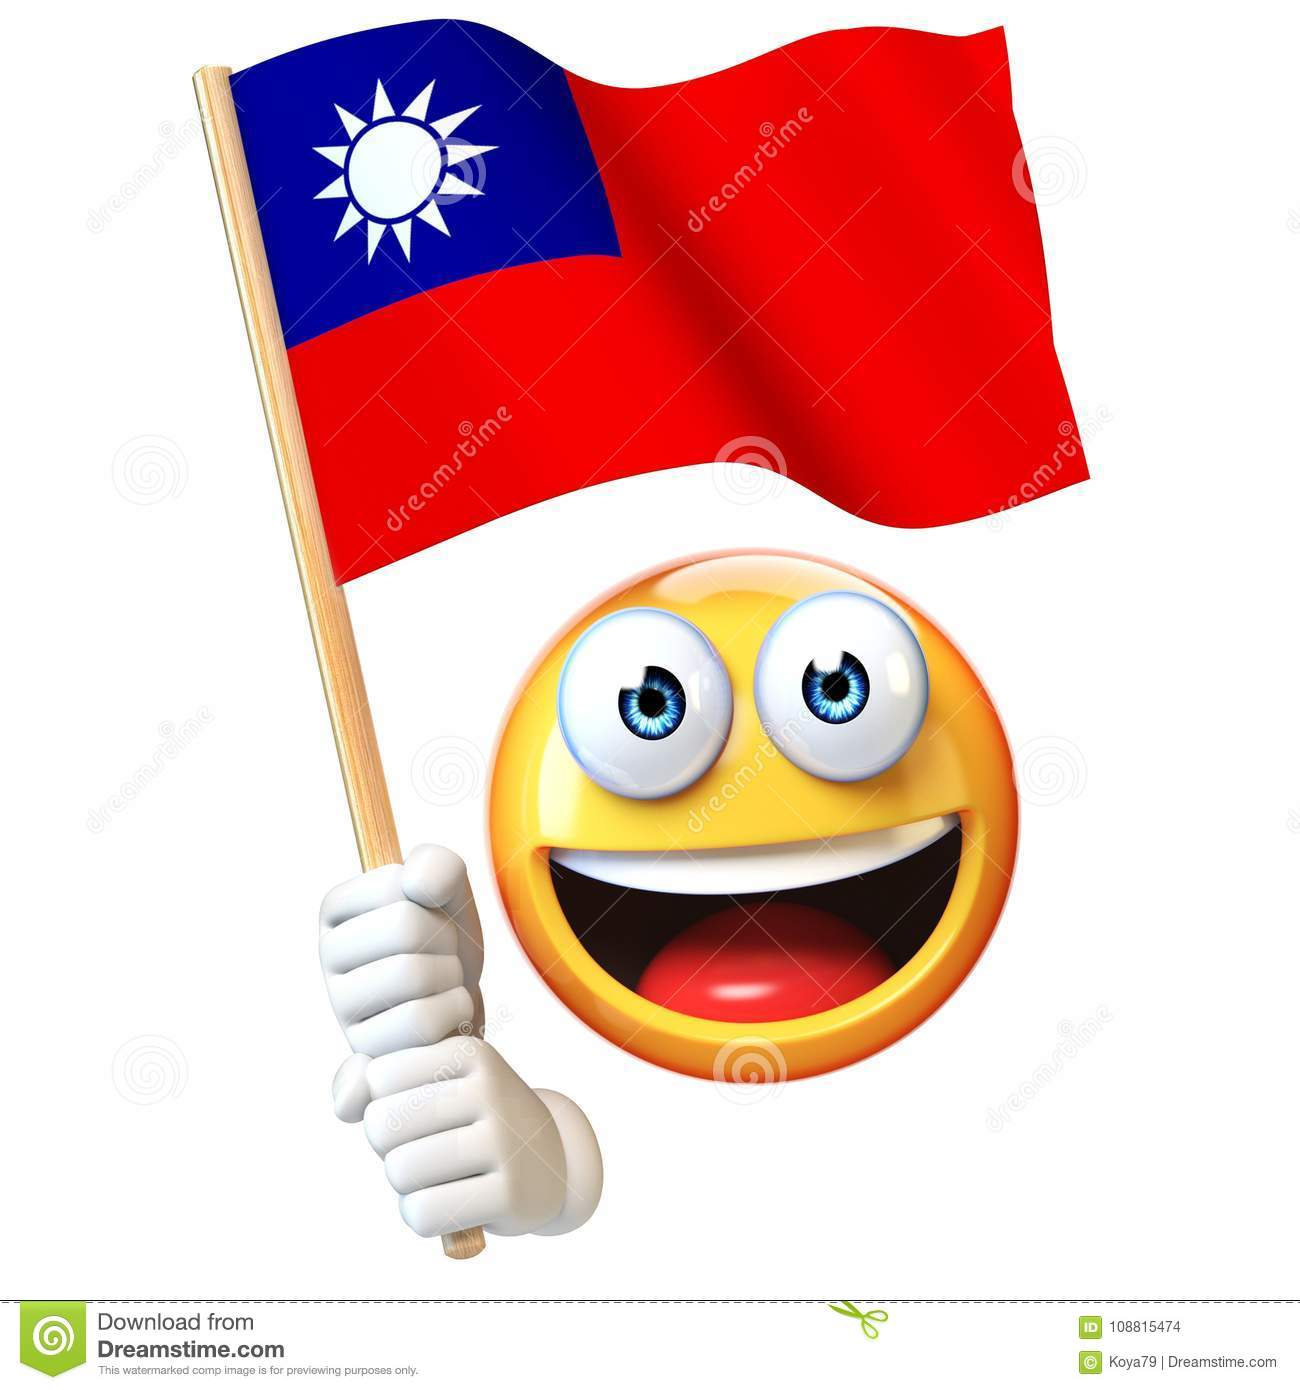 Emoji Holding Taiwan Flag, Emoticon Waving National Flag Of Taiwan